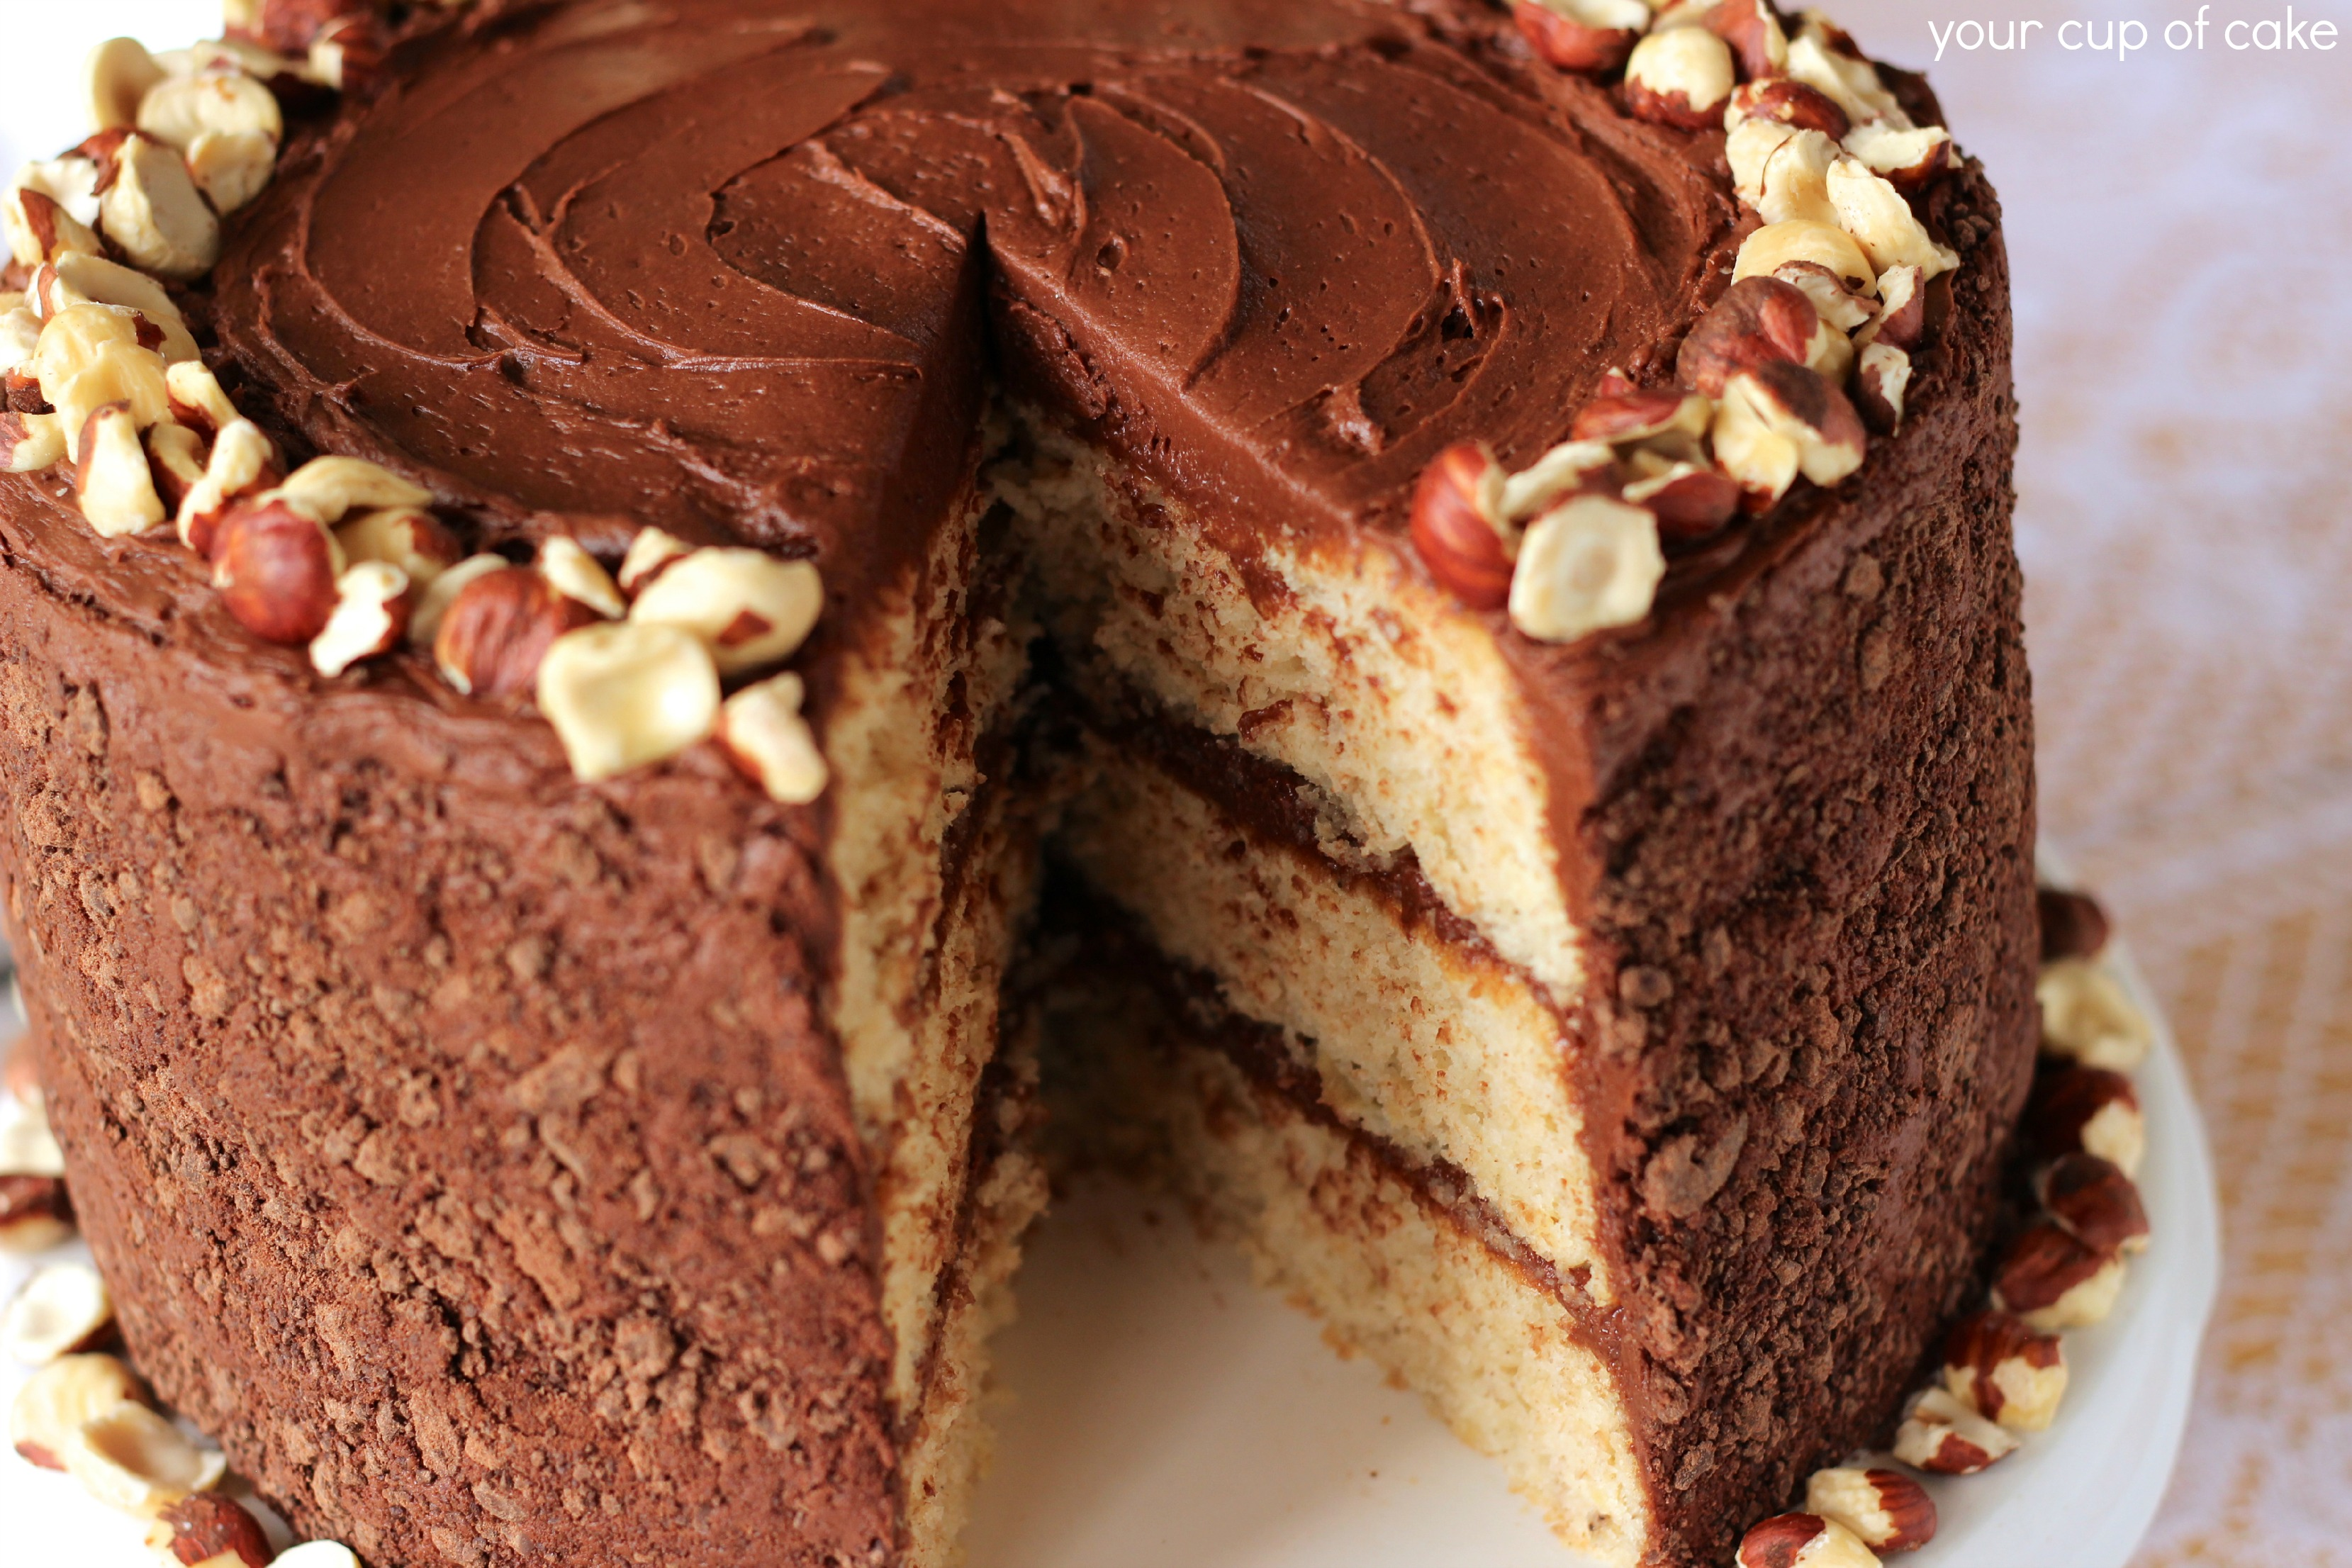 Banana Chocolate Hazelnut Cake - Your Cup of Cake